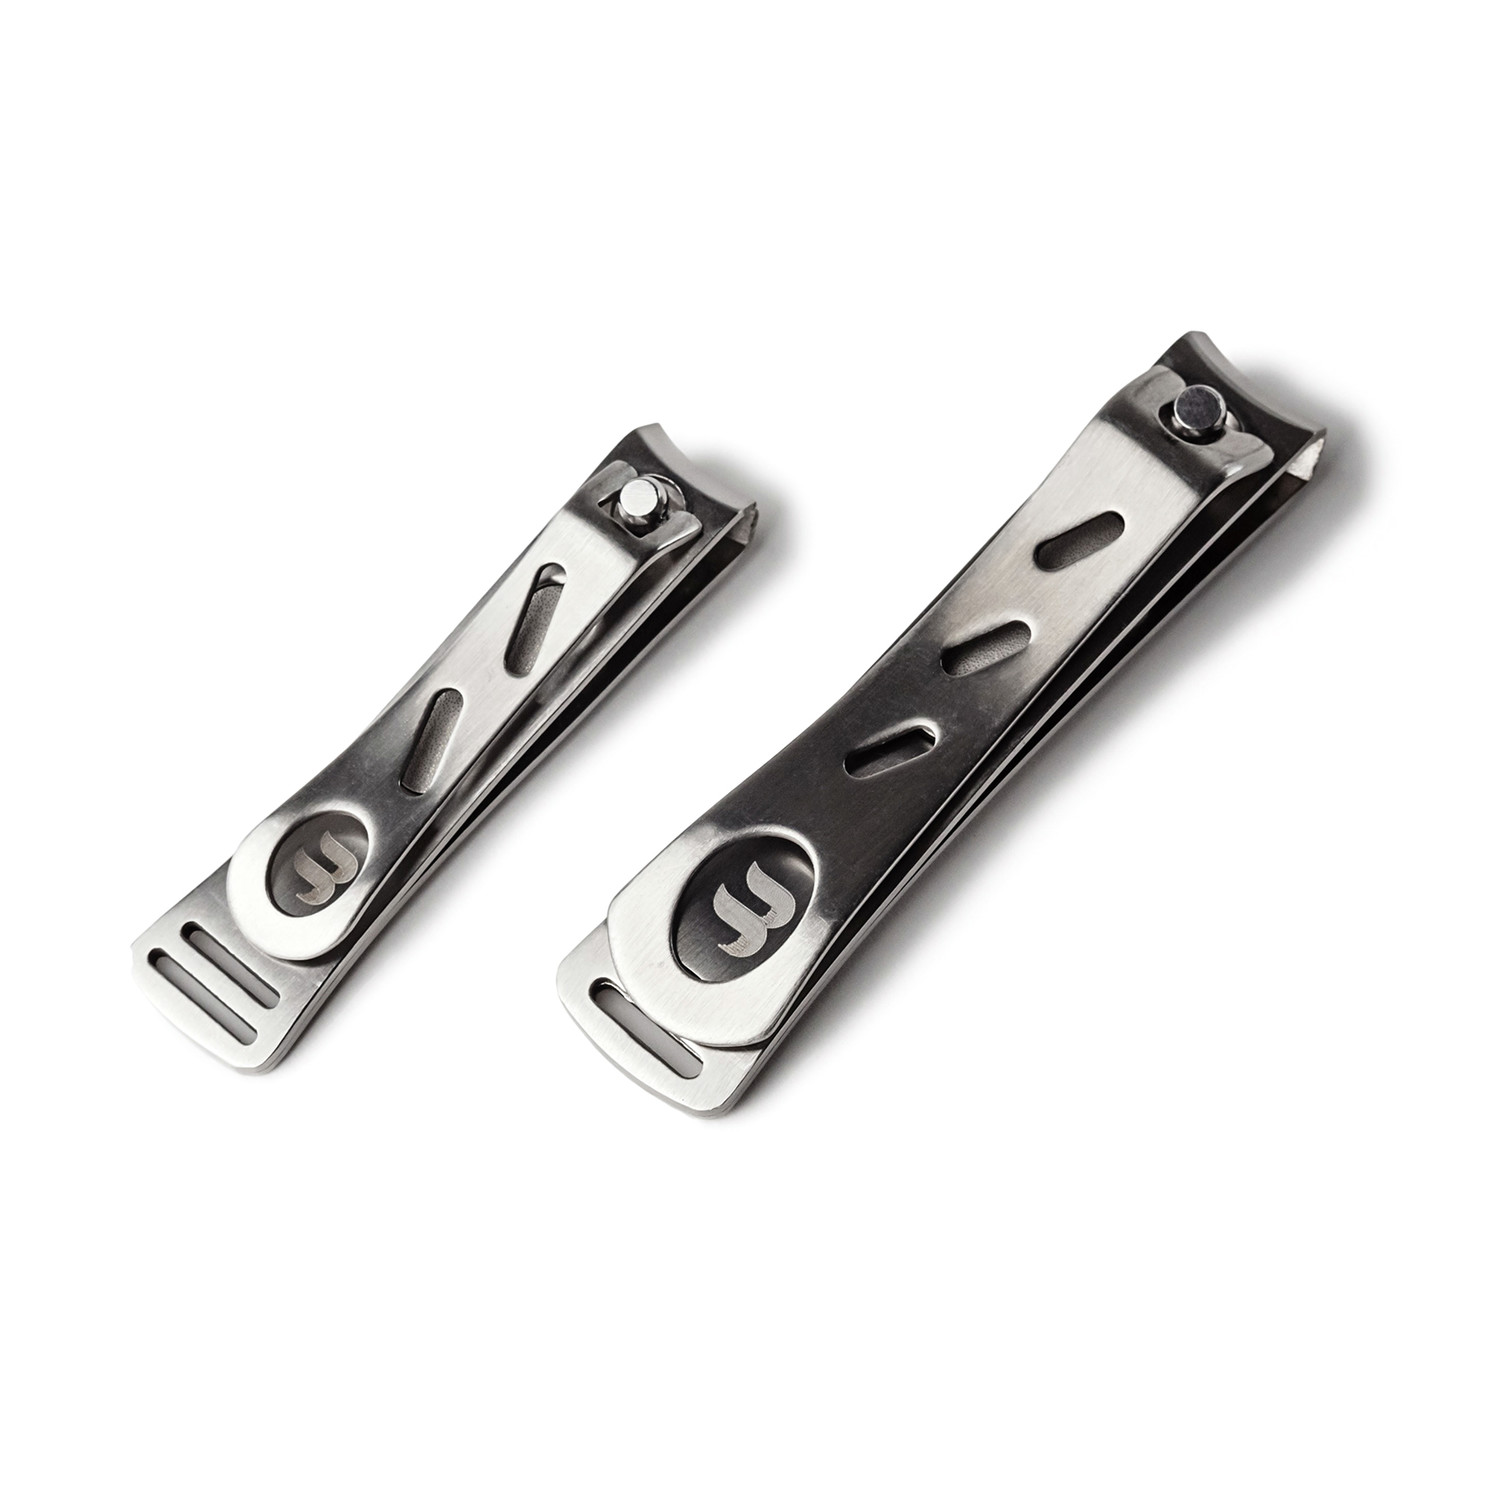 Radius Nail Clippers // Set of 2 - Brio - Touch of Modern